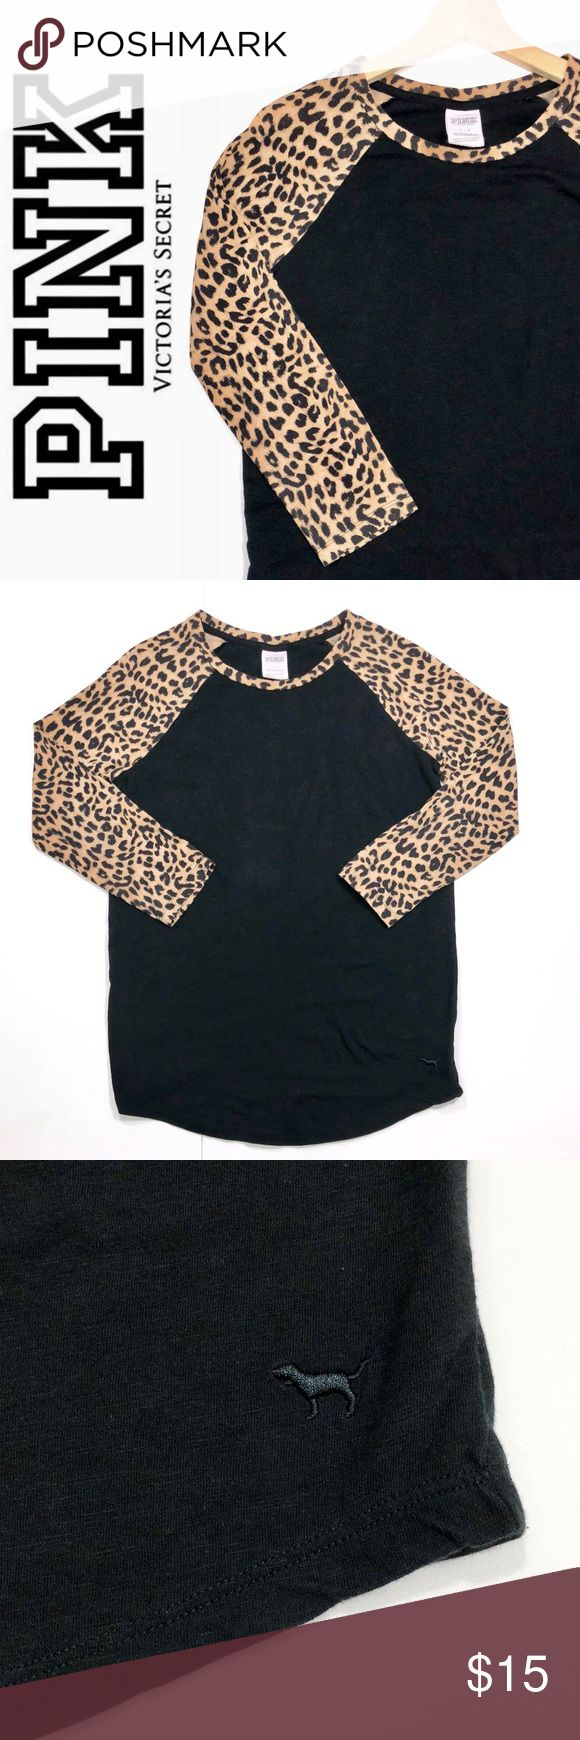 PINK Animal Print Tee ✔️3/4 Sleeve ✔️Cotton•Polyester ✔️Excellent Used Condition ✔️1742-3 PINK Victoria's Secret Tops